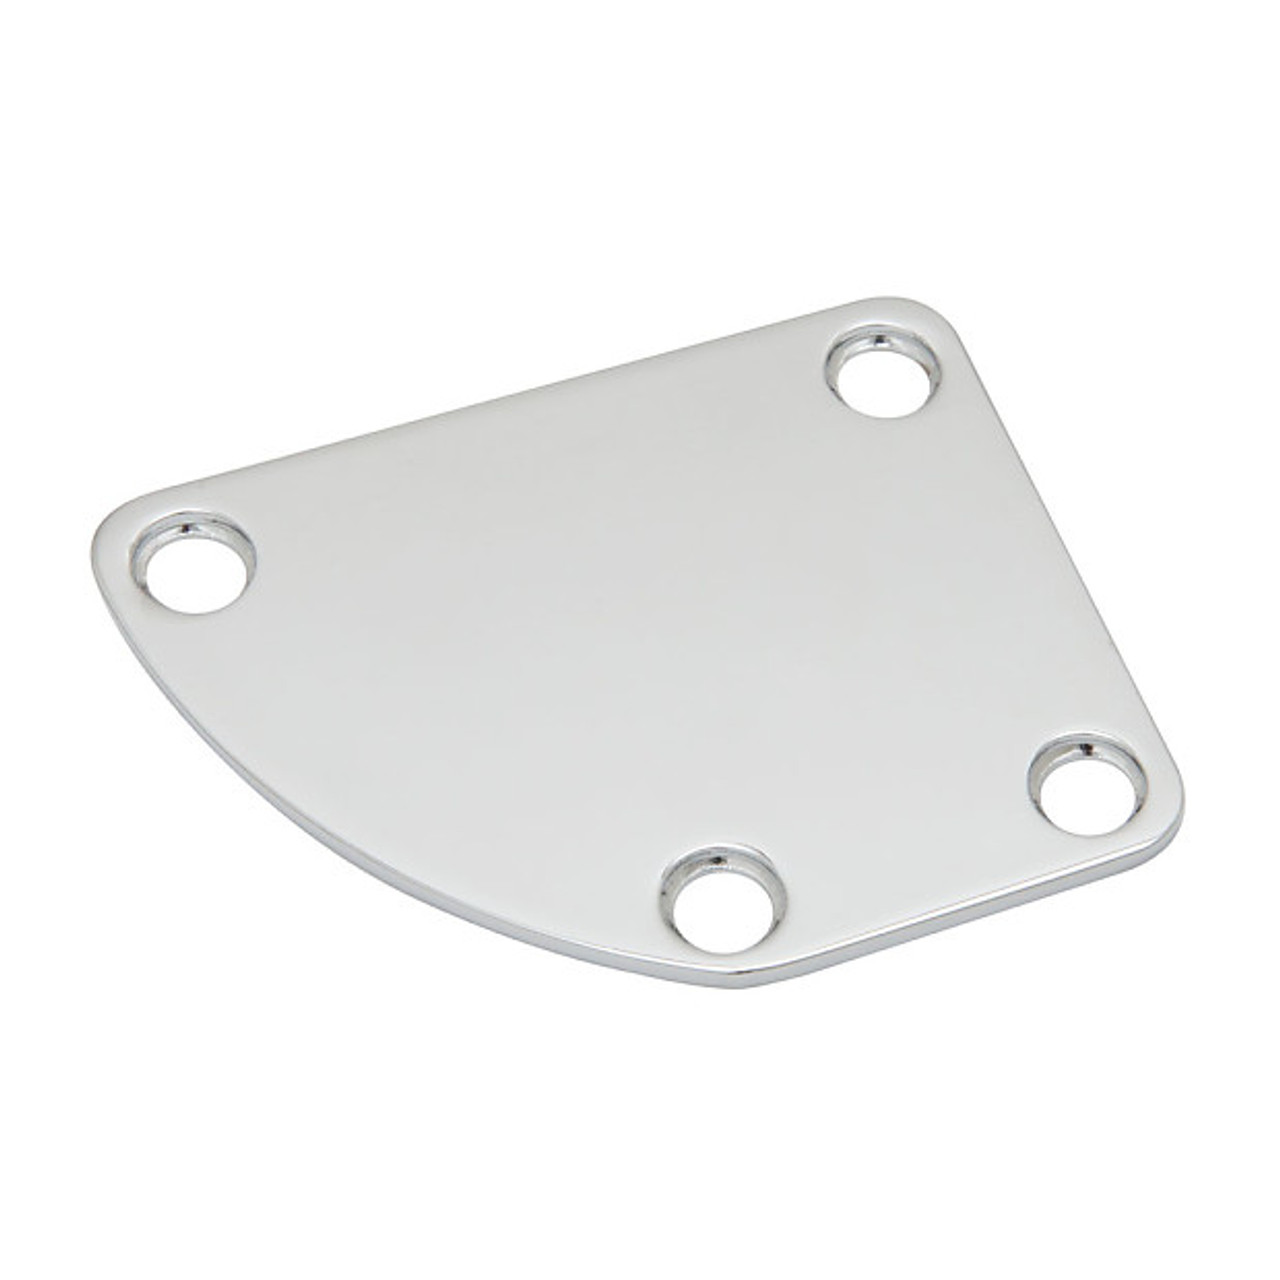 Curved Neck Plate - Chrome